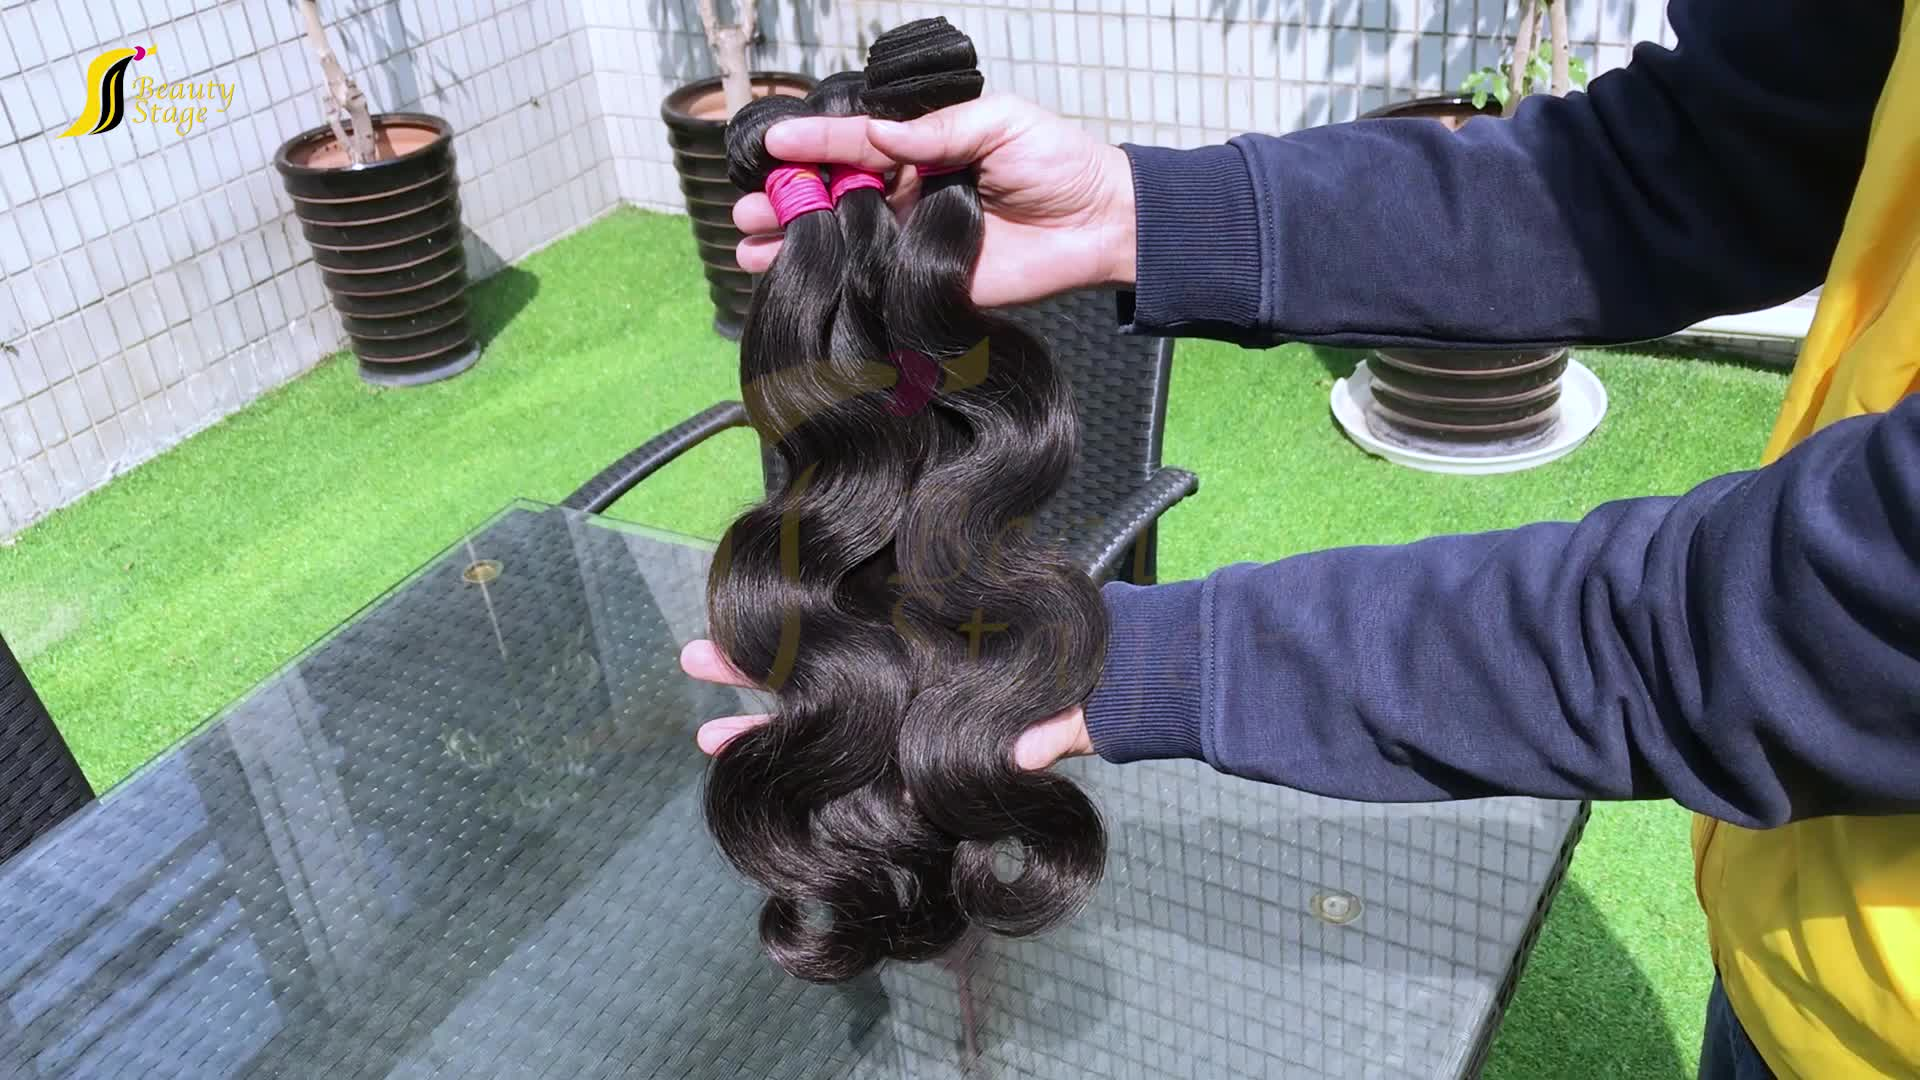 Raw indian temple hair directly from india, Cuticles aligned Raw indian hair vendor,curly indian hair raw unprocessed virgin